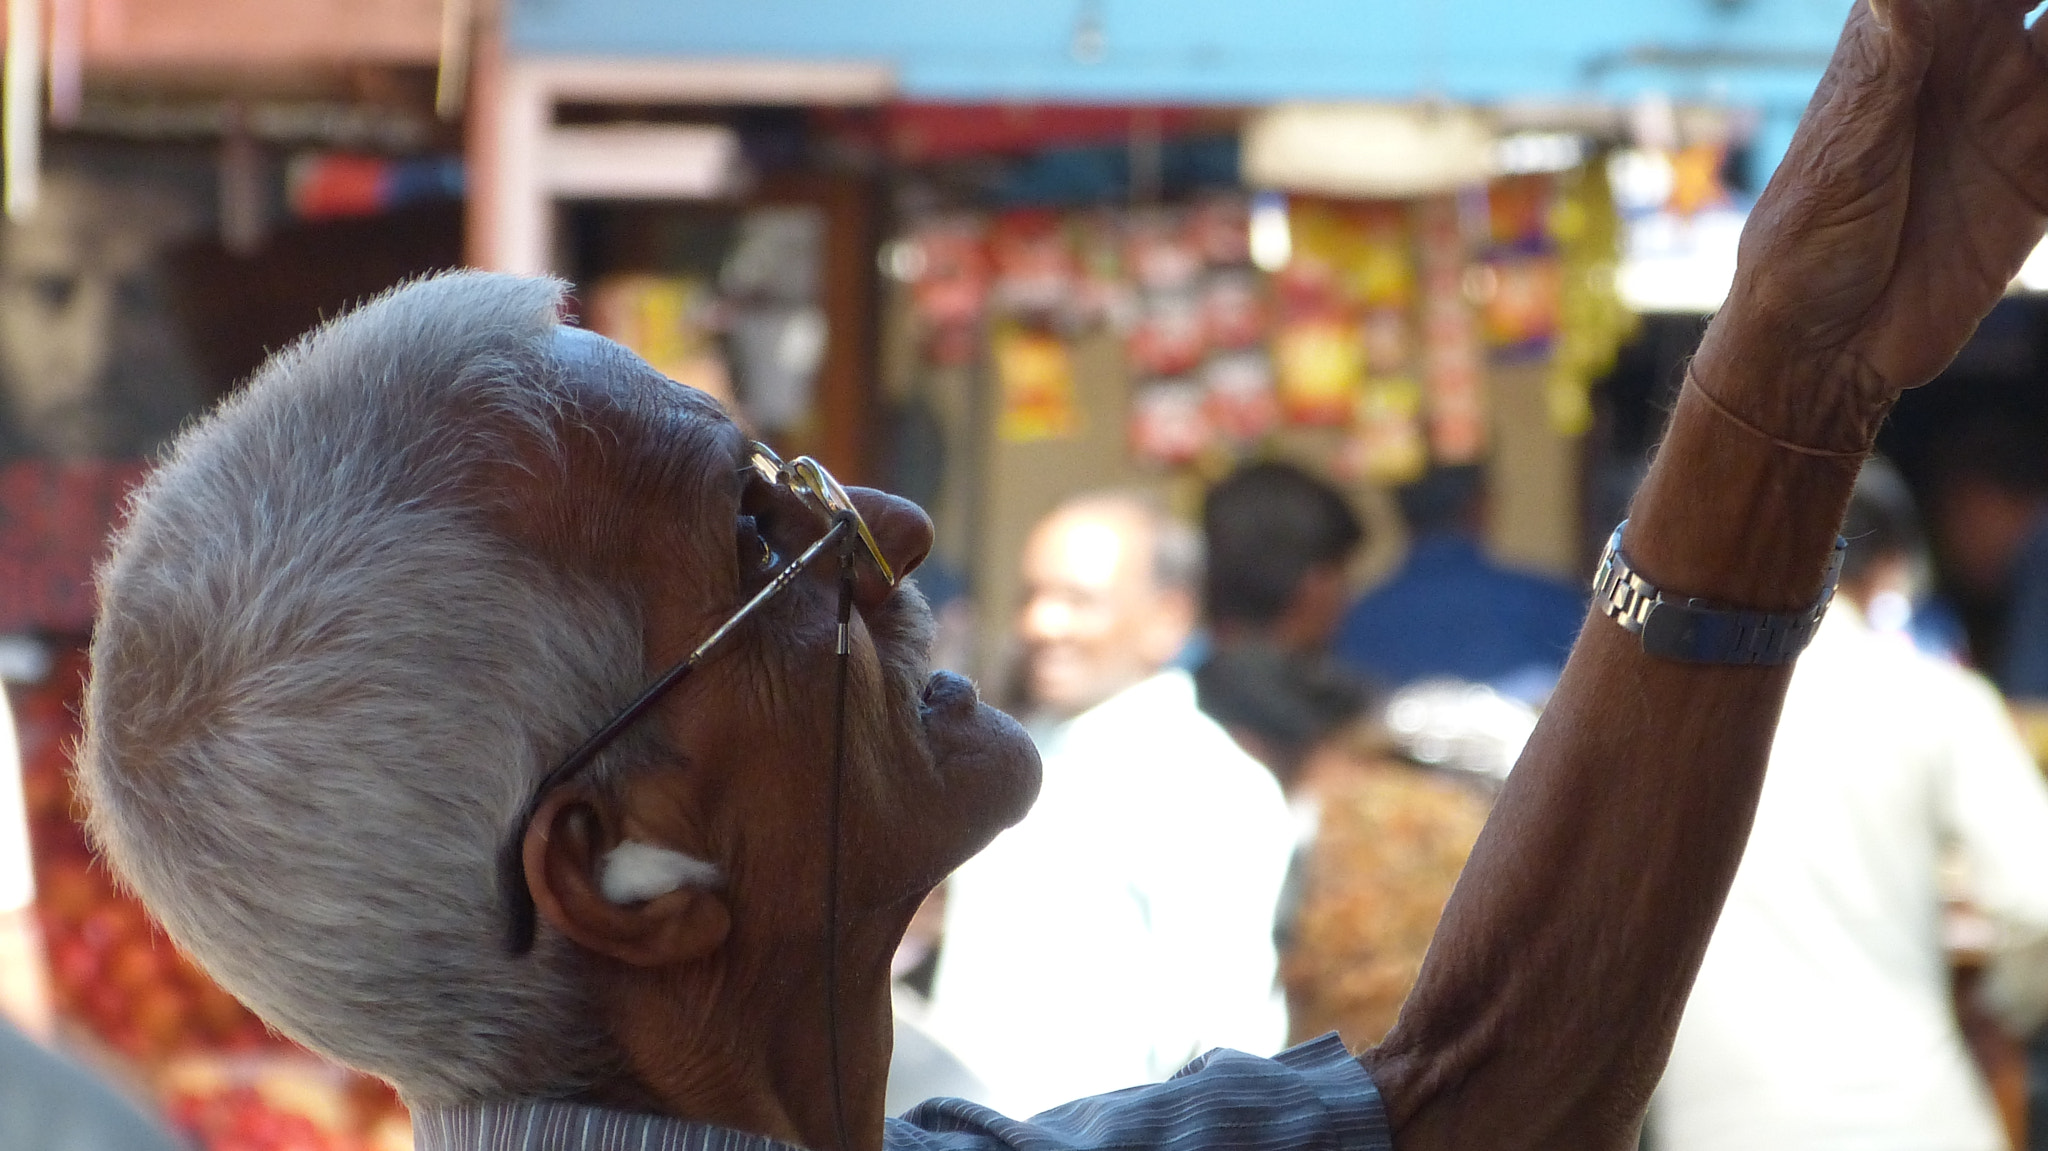 Photograph Mapusa Market - Old Man Working by Ddark  Room on 500px